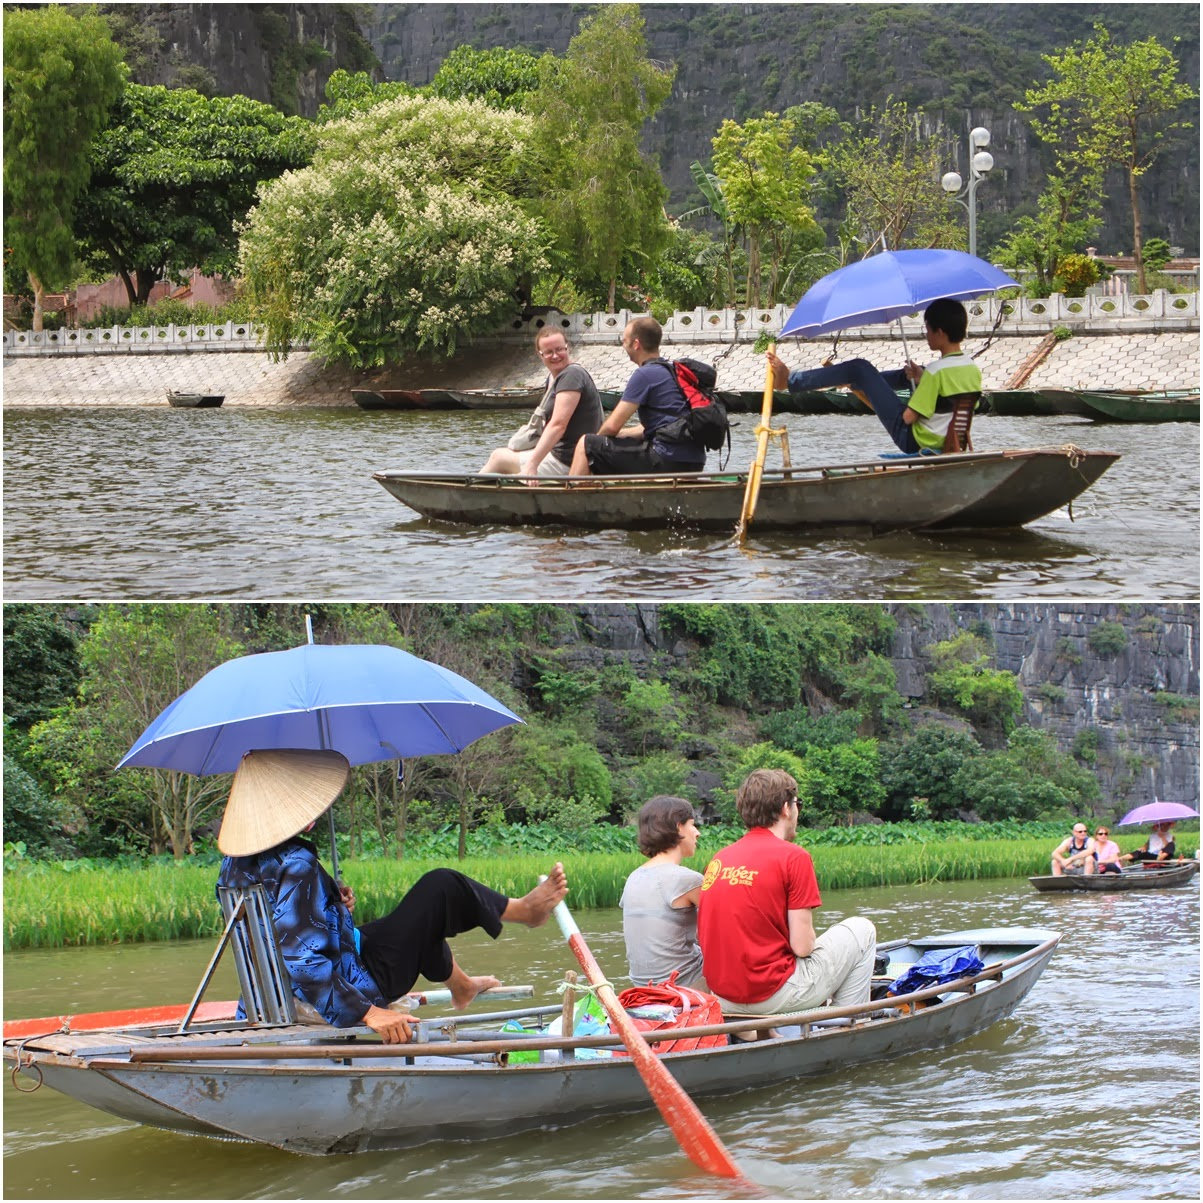 Some Vietnamese row the boats with their feet while others row with hands at Tam Coc Wharf near the city of Ninh Bình in northern Vietnam